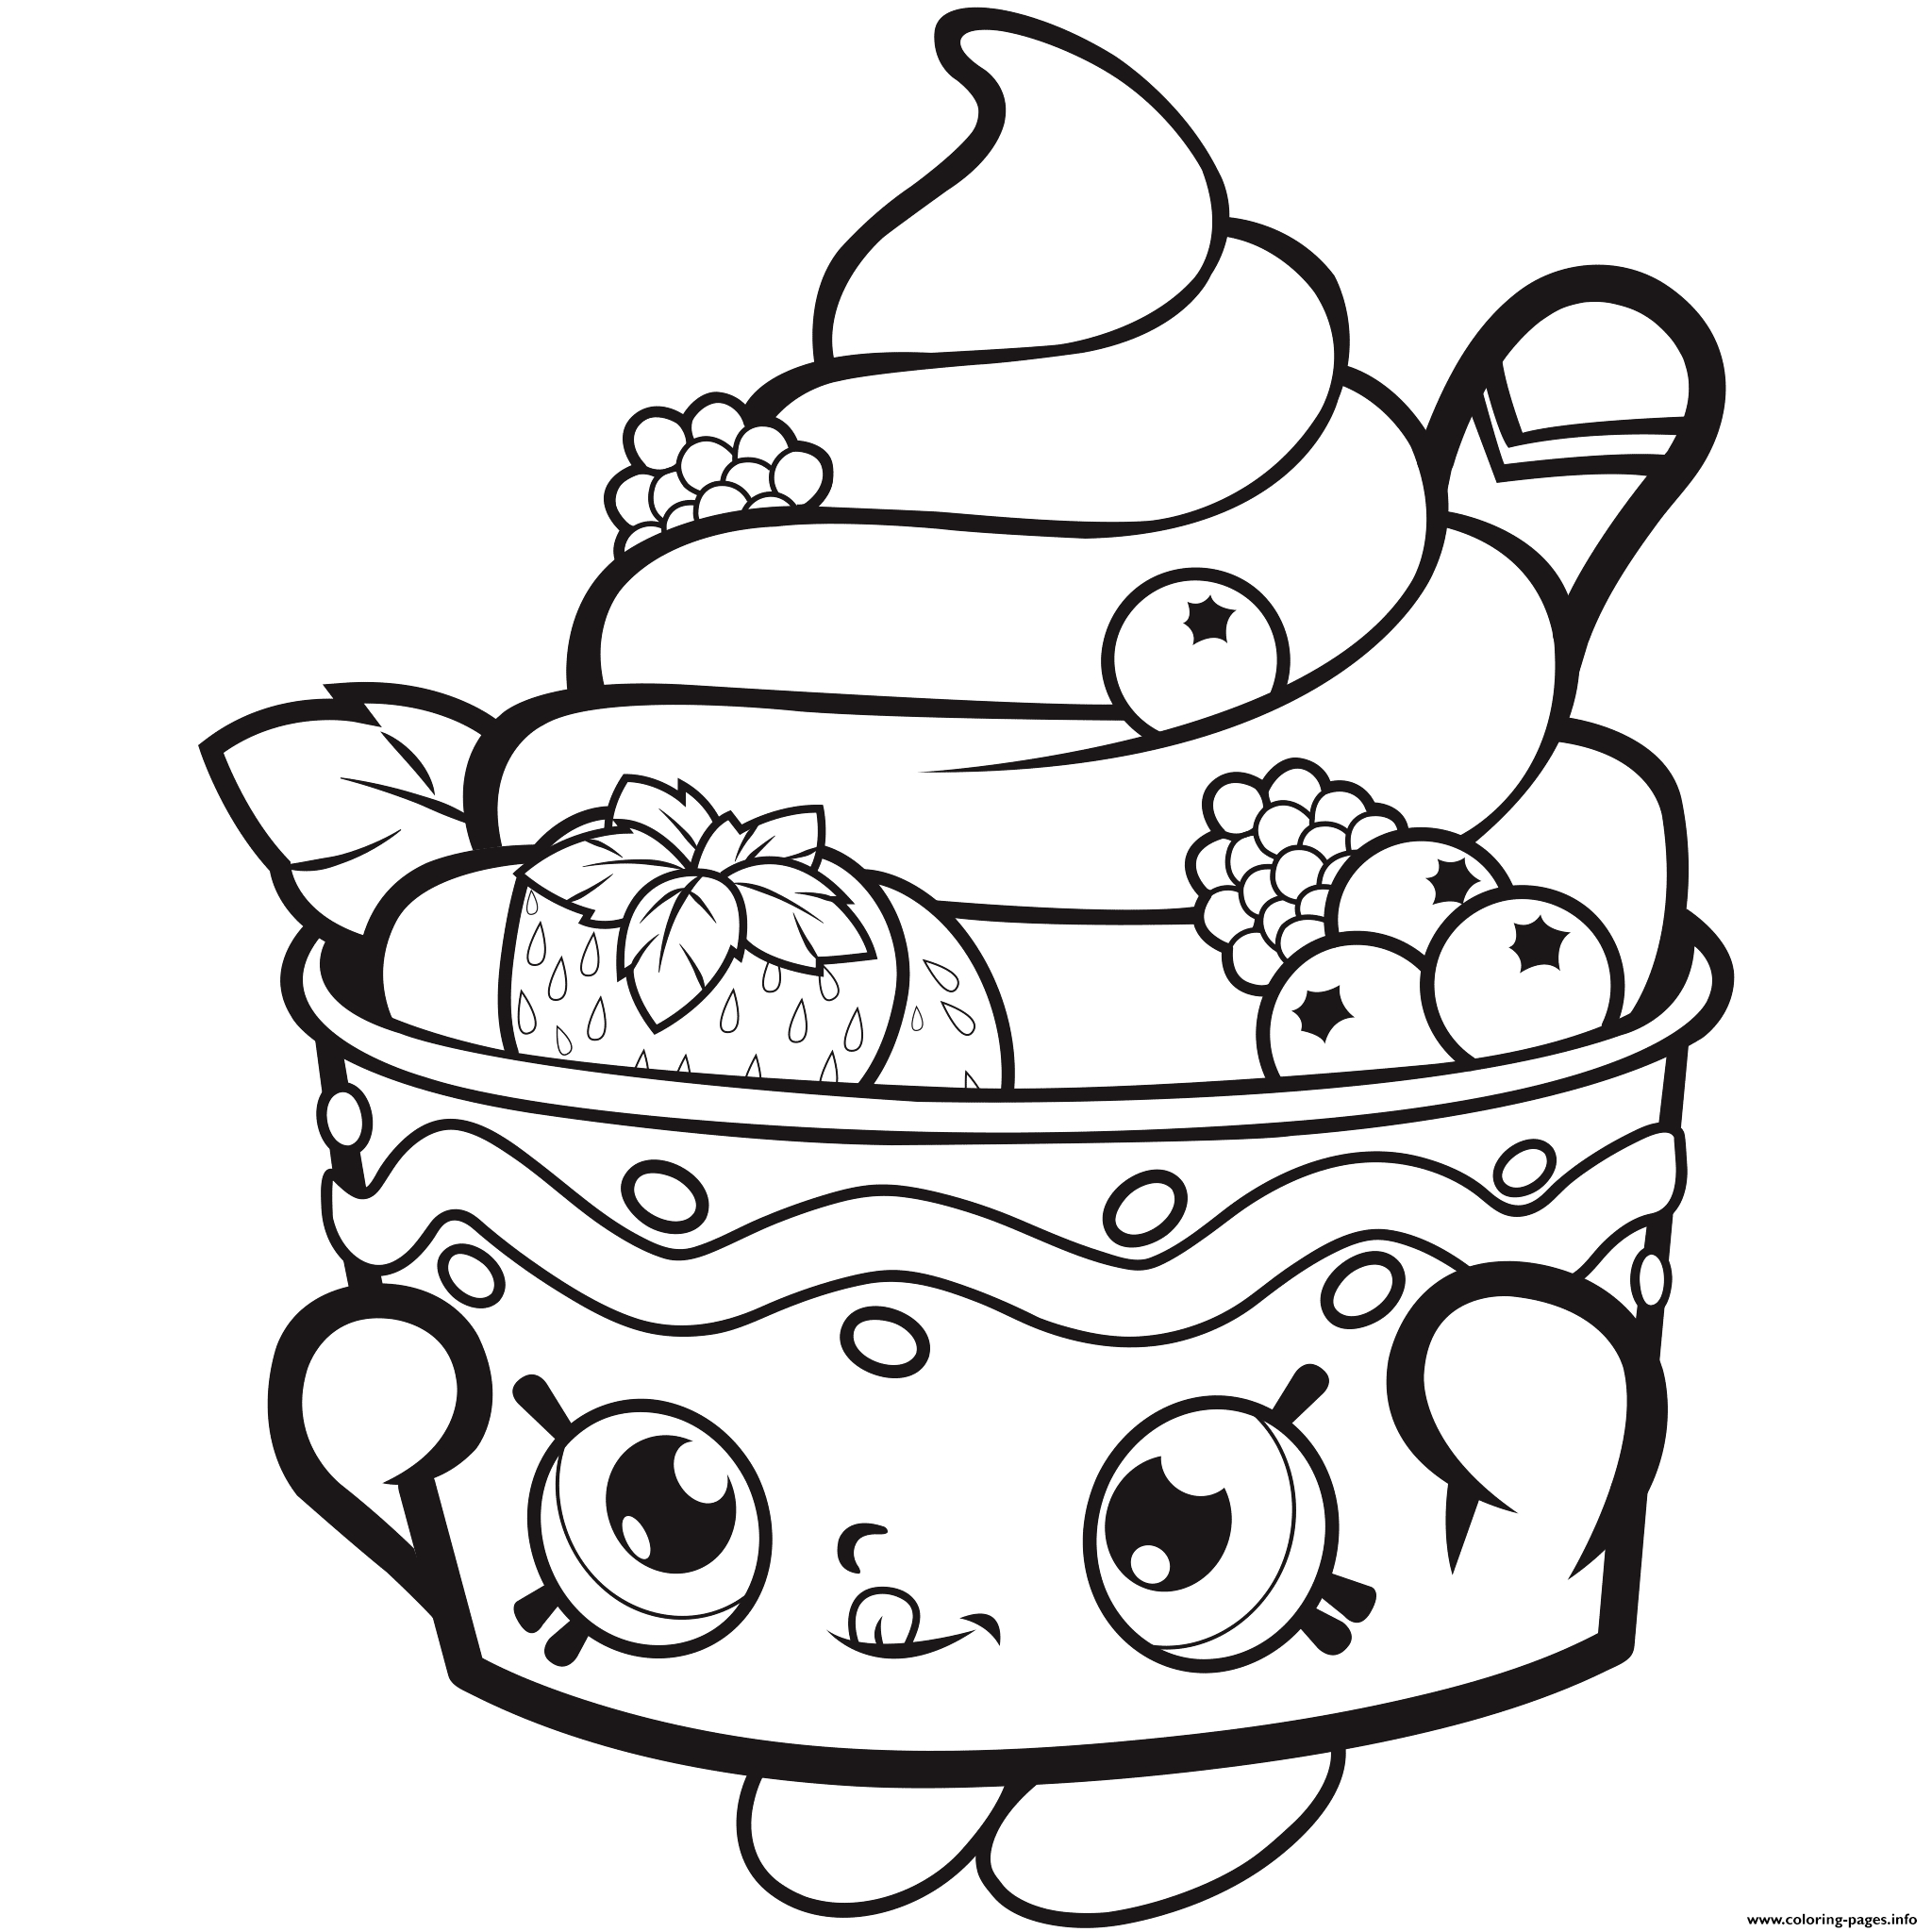 2048x2048 Best Of Shopkins Coloring Pages Cartoon Coloring Pages Free